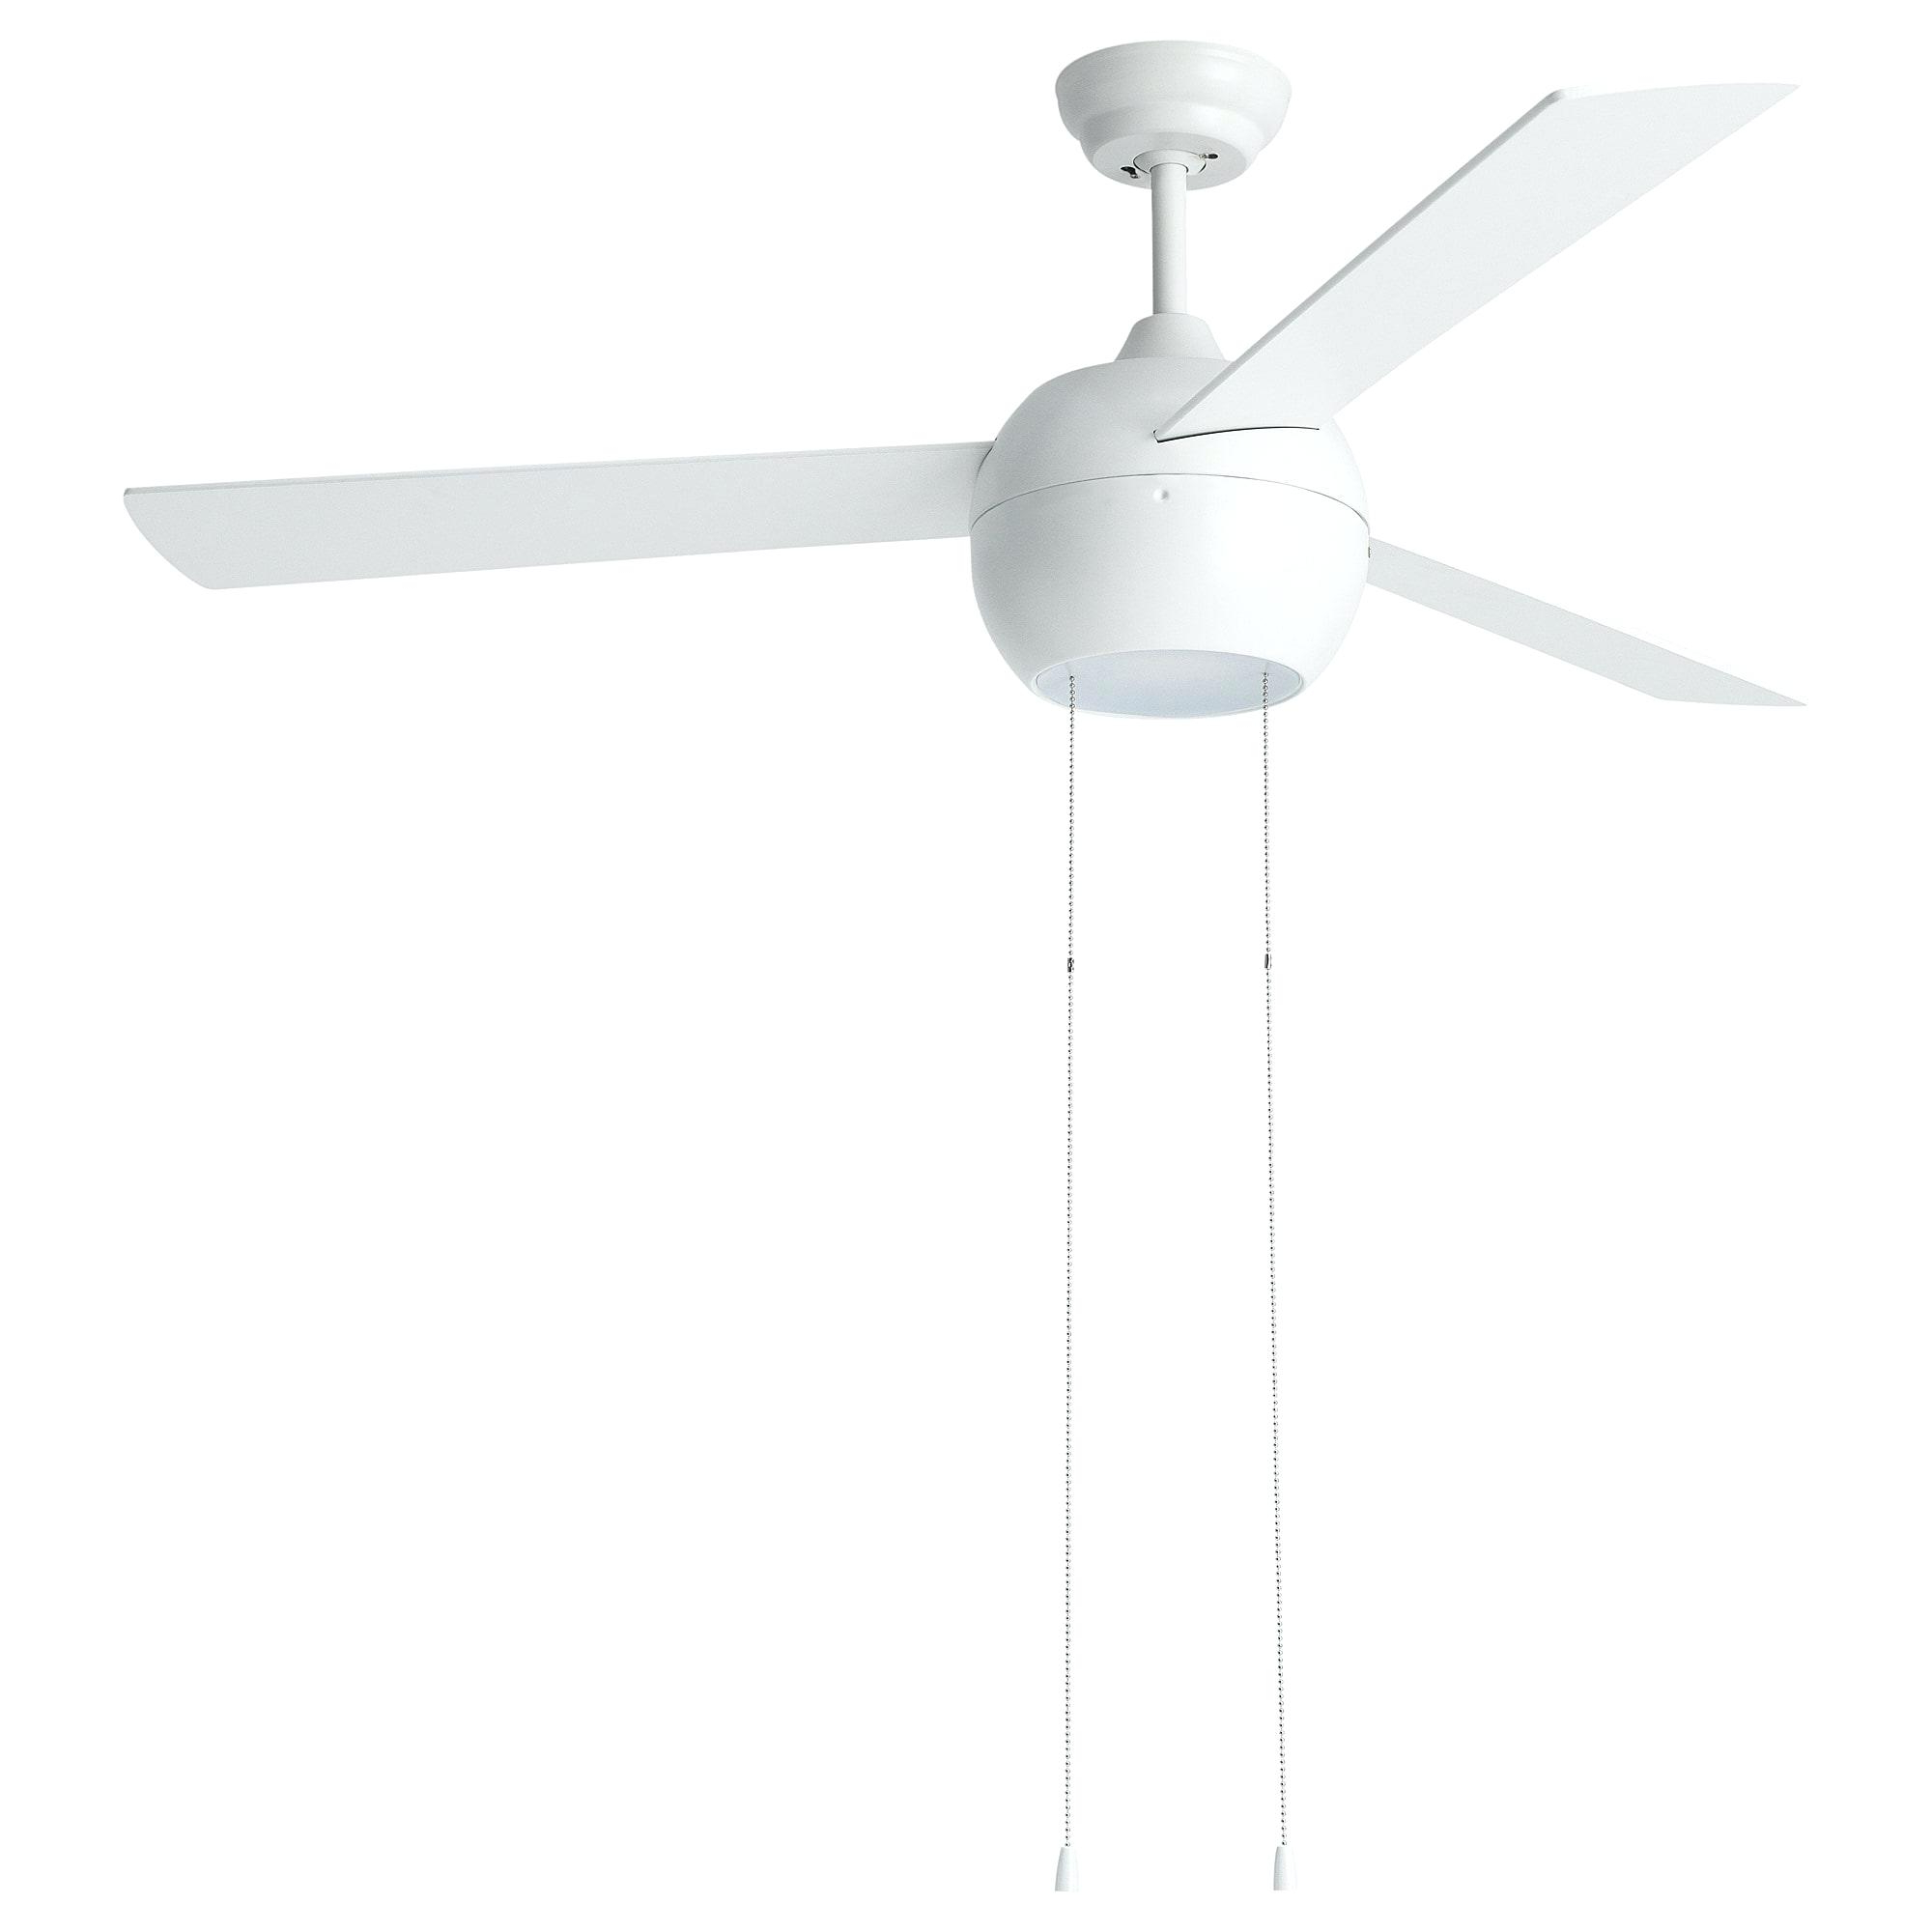 Sherwood 3 Blade Ceiling Fans Inside Most Current 3 Blade Ceiling Fan – Michikokerr (View 16 of 20)